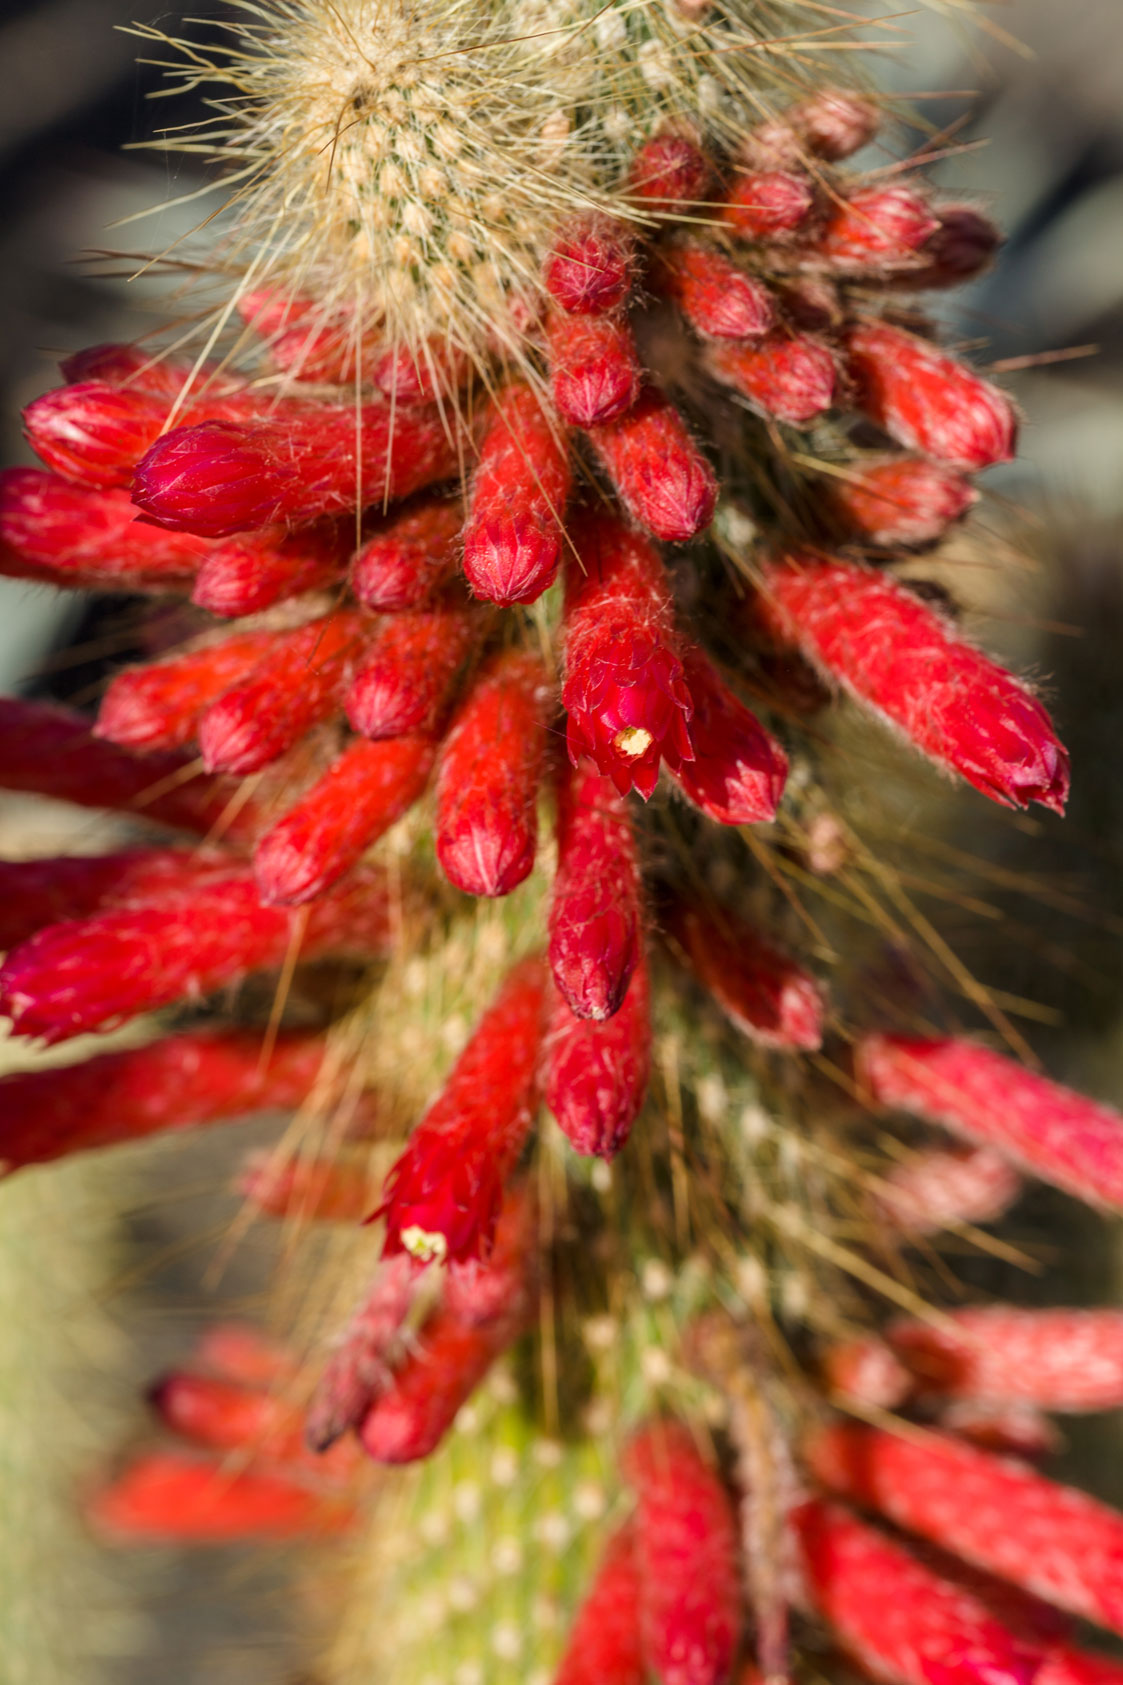 A close look at the top of a Silver Torch cactus, covered in bunches of thin bright red flower buds.